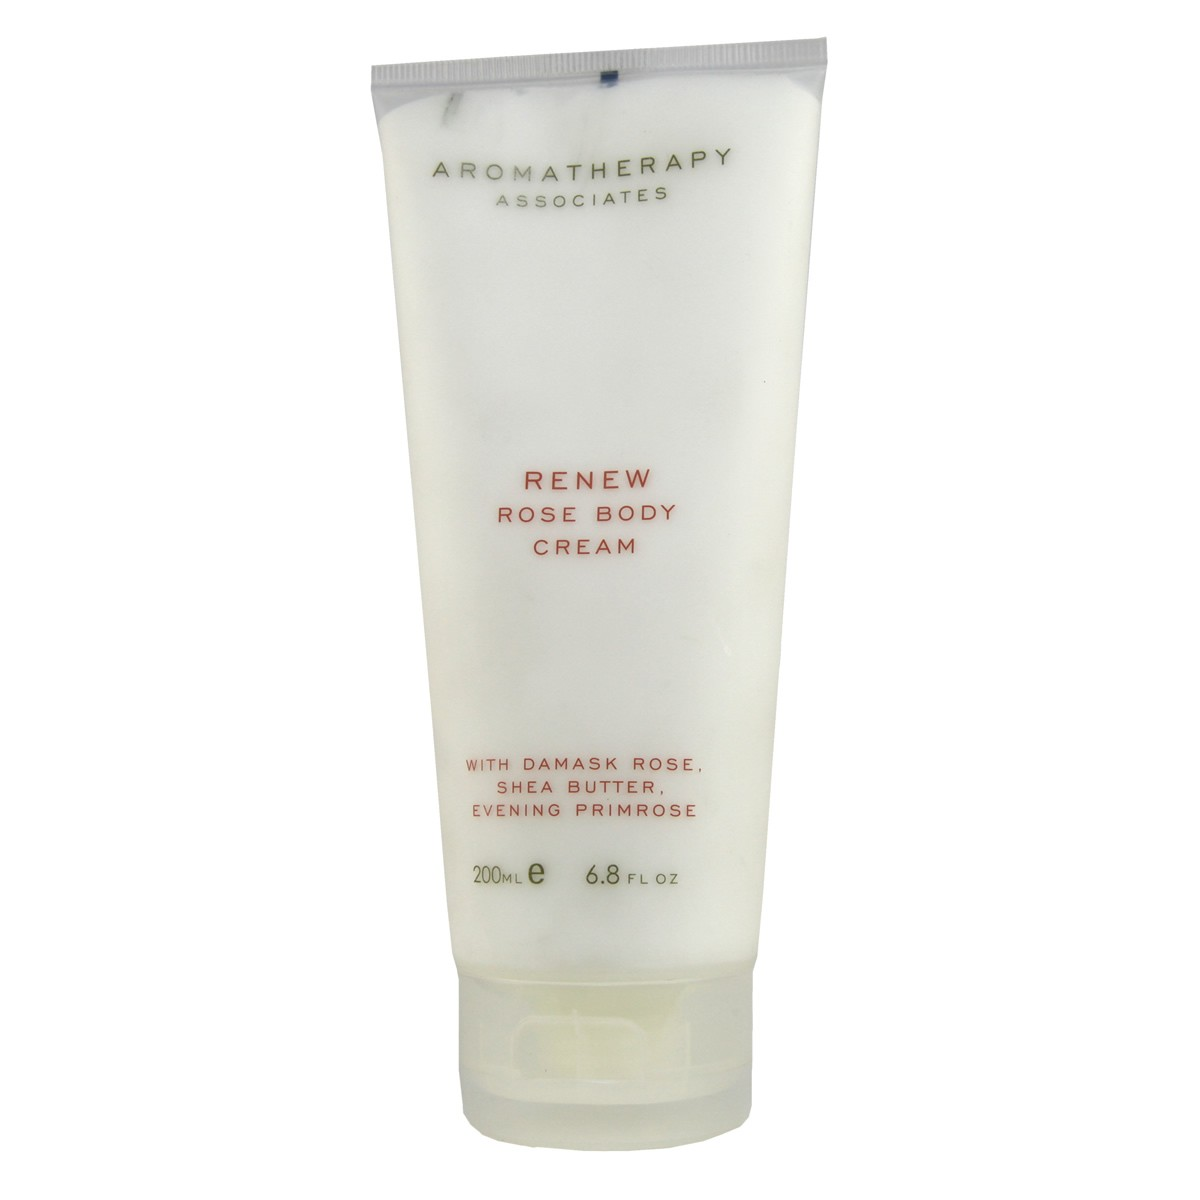 Aromatherapy Associates Renew Rose Body Cream